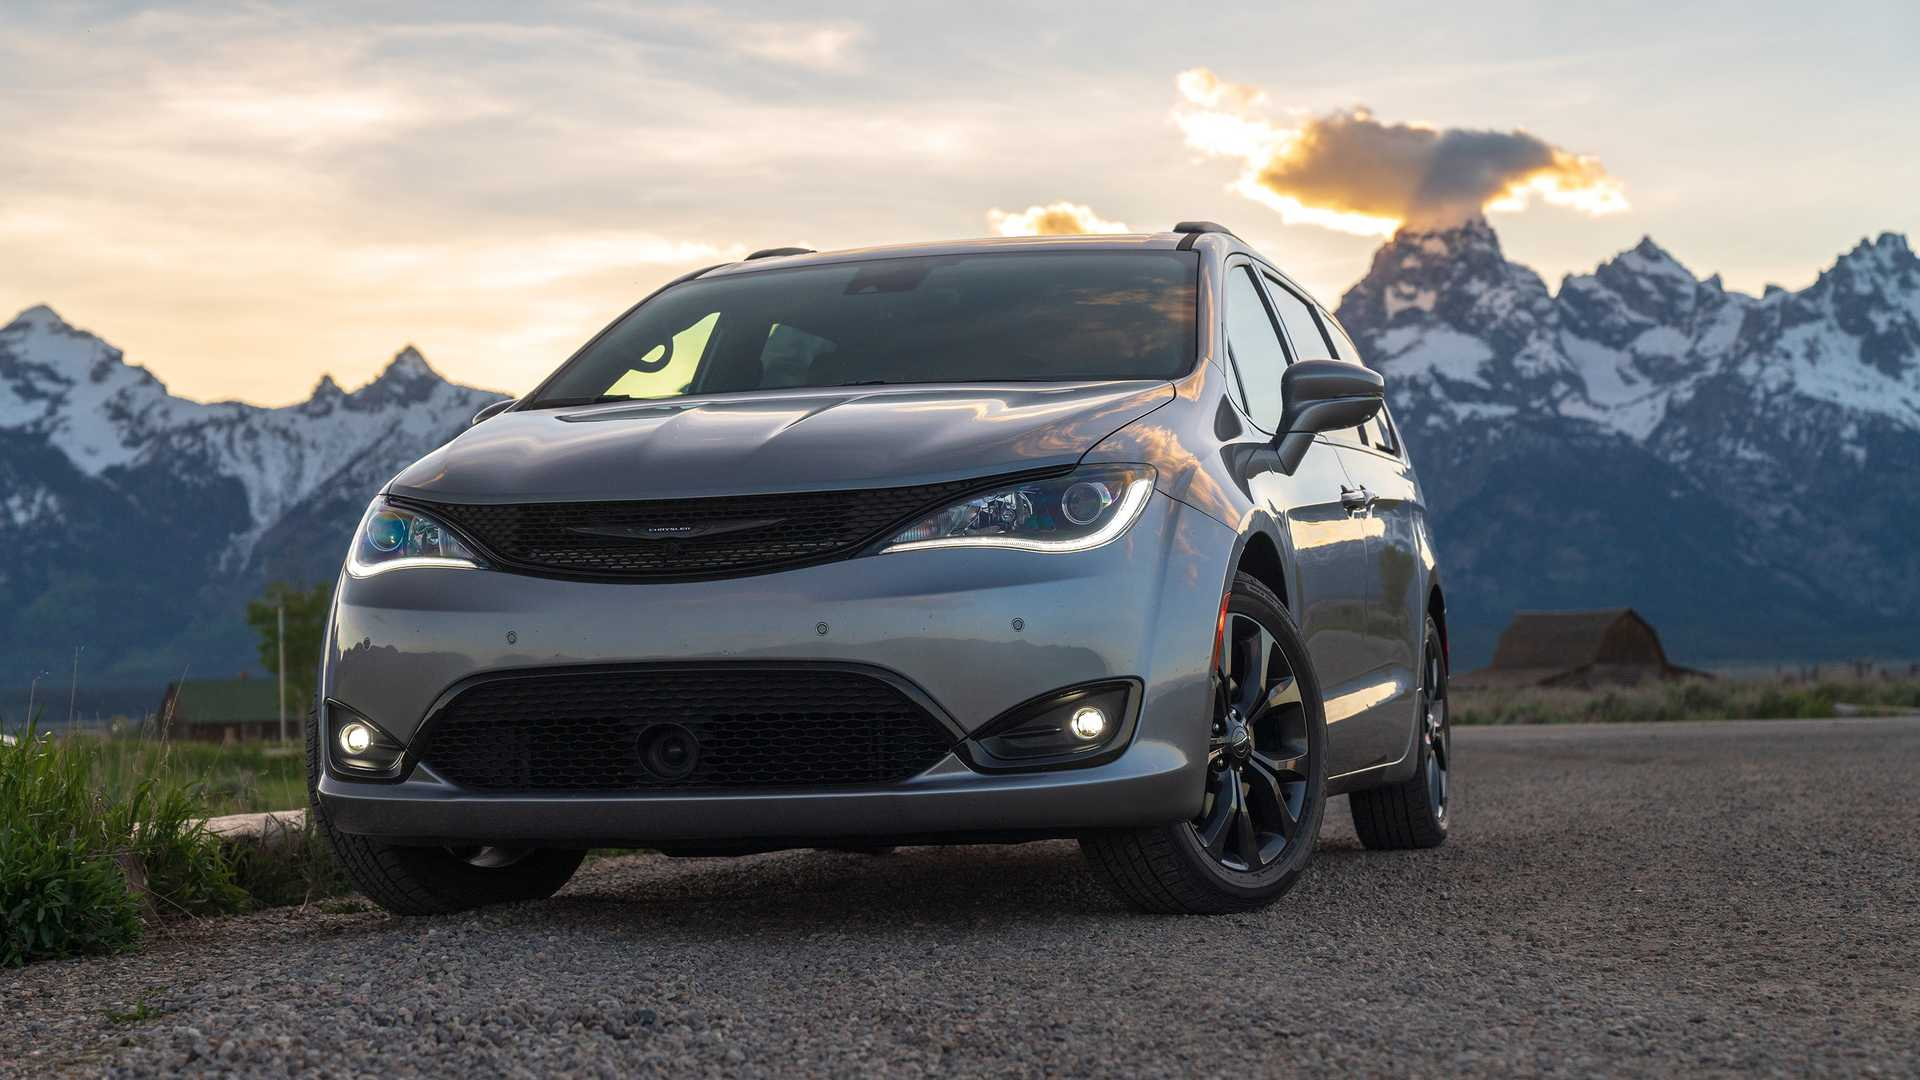 2020_Chrysler_Pacifica_Red_S_Edition_0014